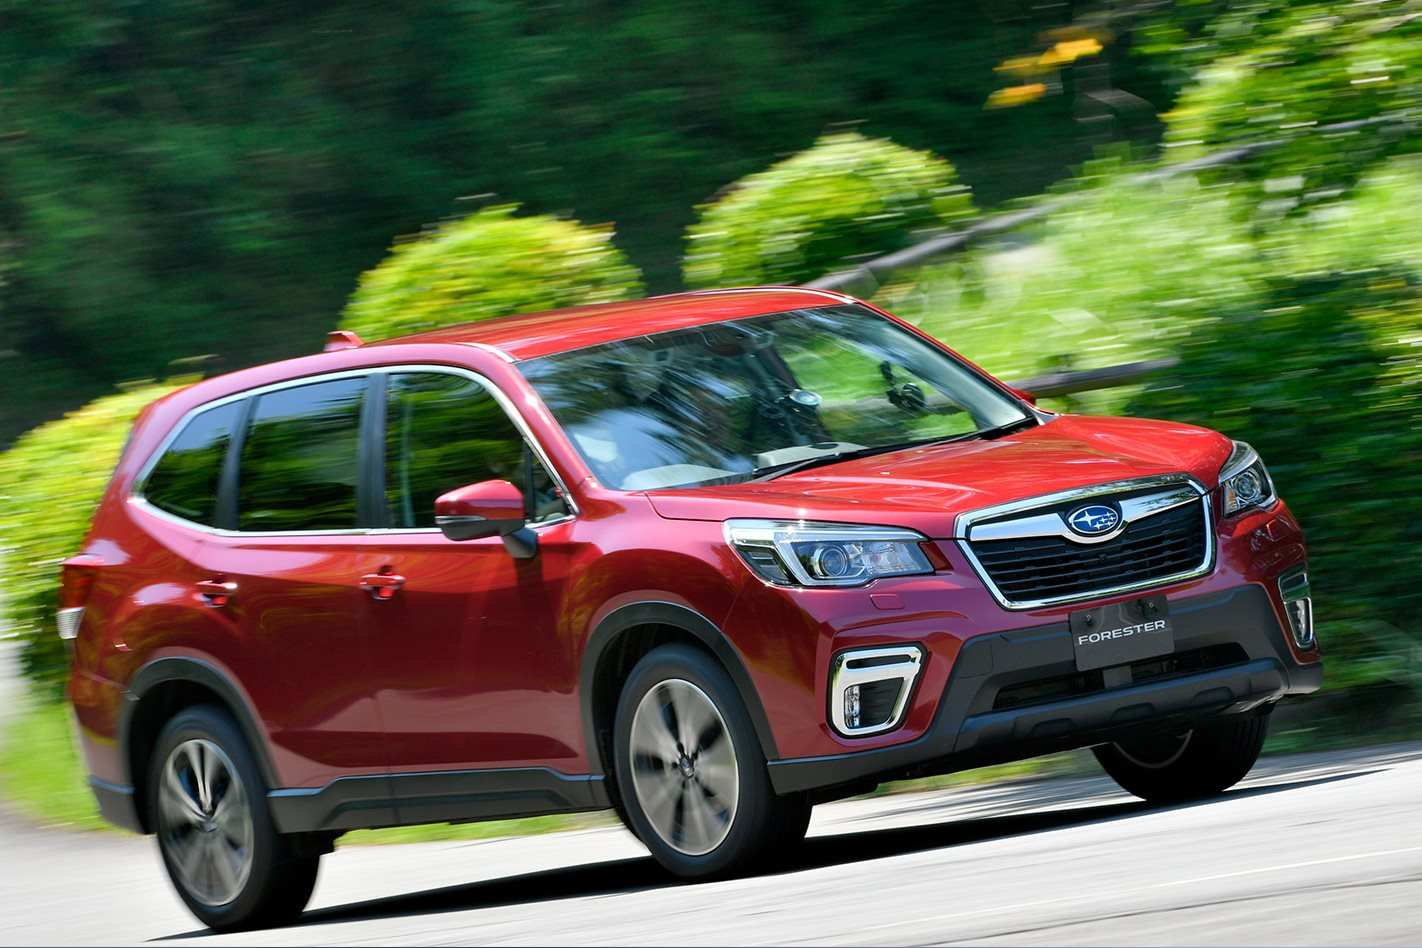 45 The Next Generation Subaru Forester 2019 Prices